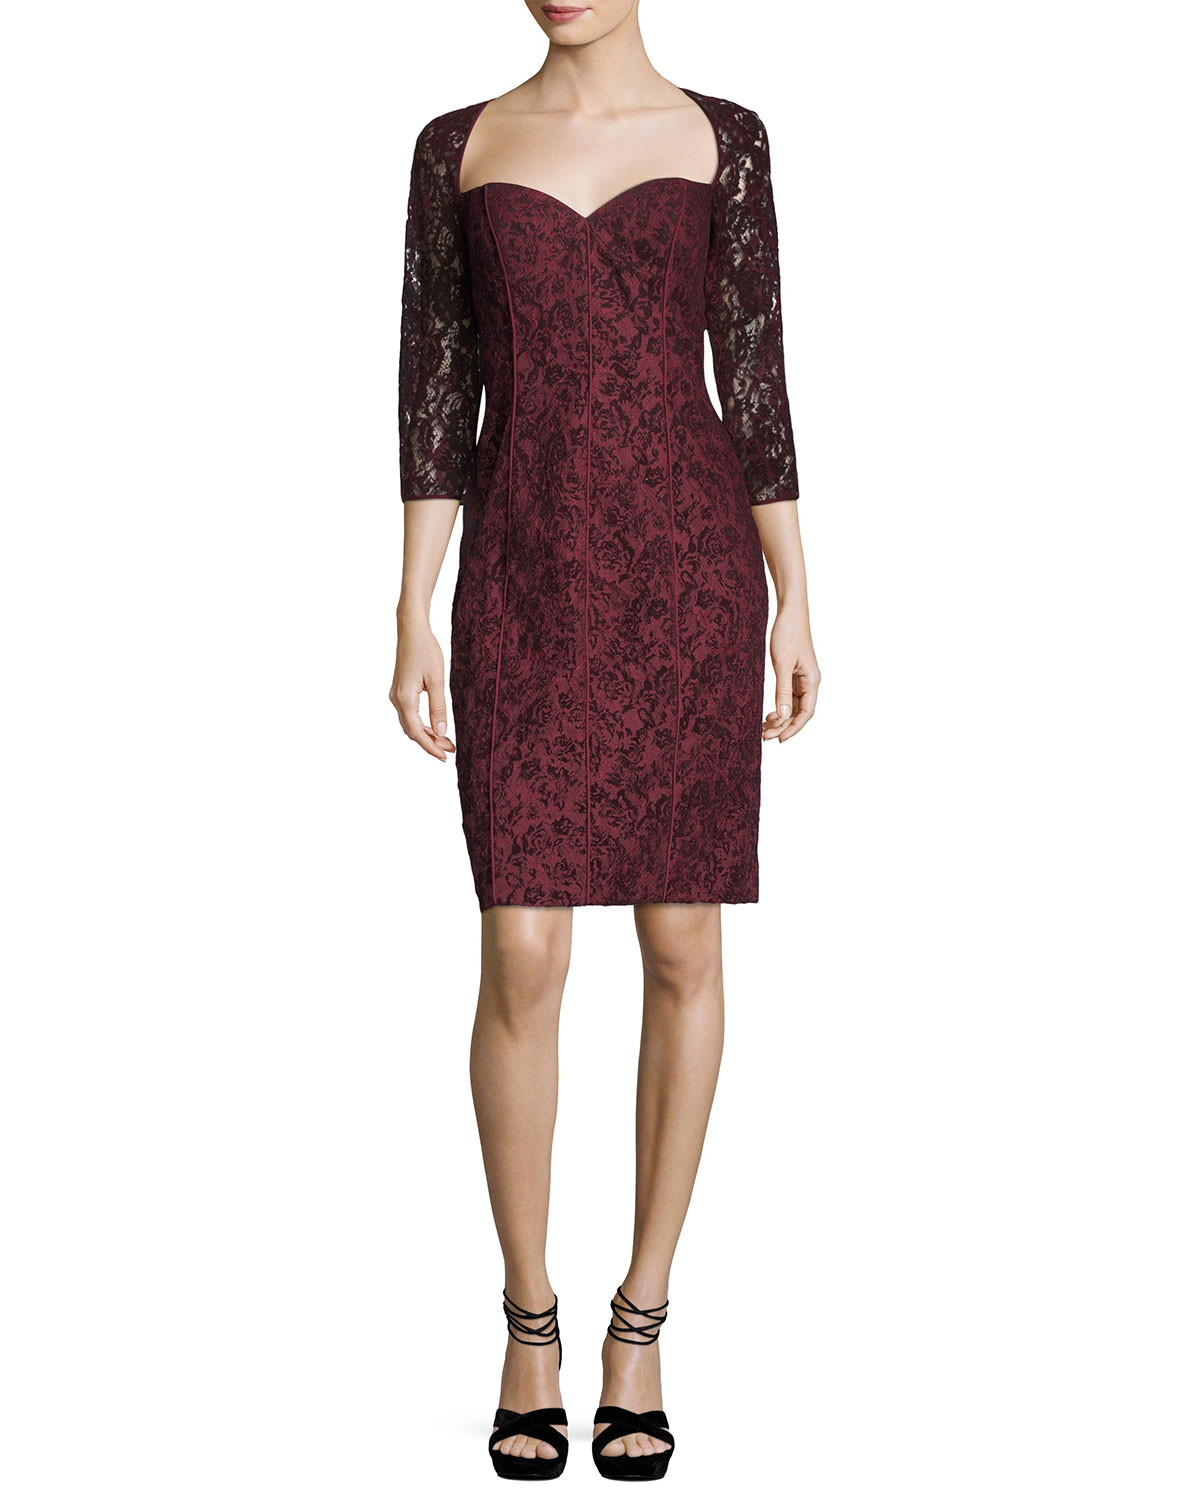 Sweetheart-Neck Lace Cocktail Dress